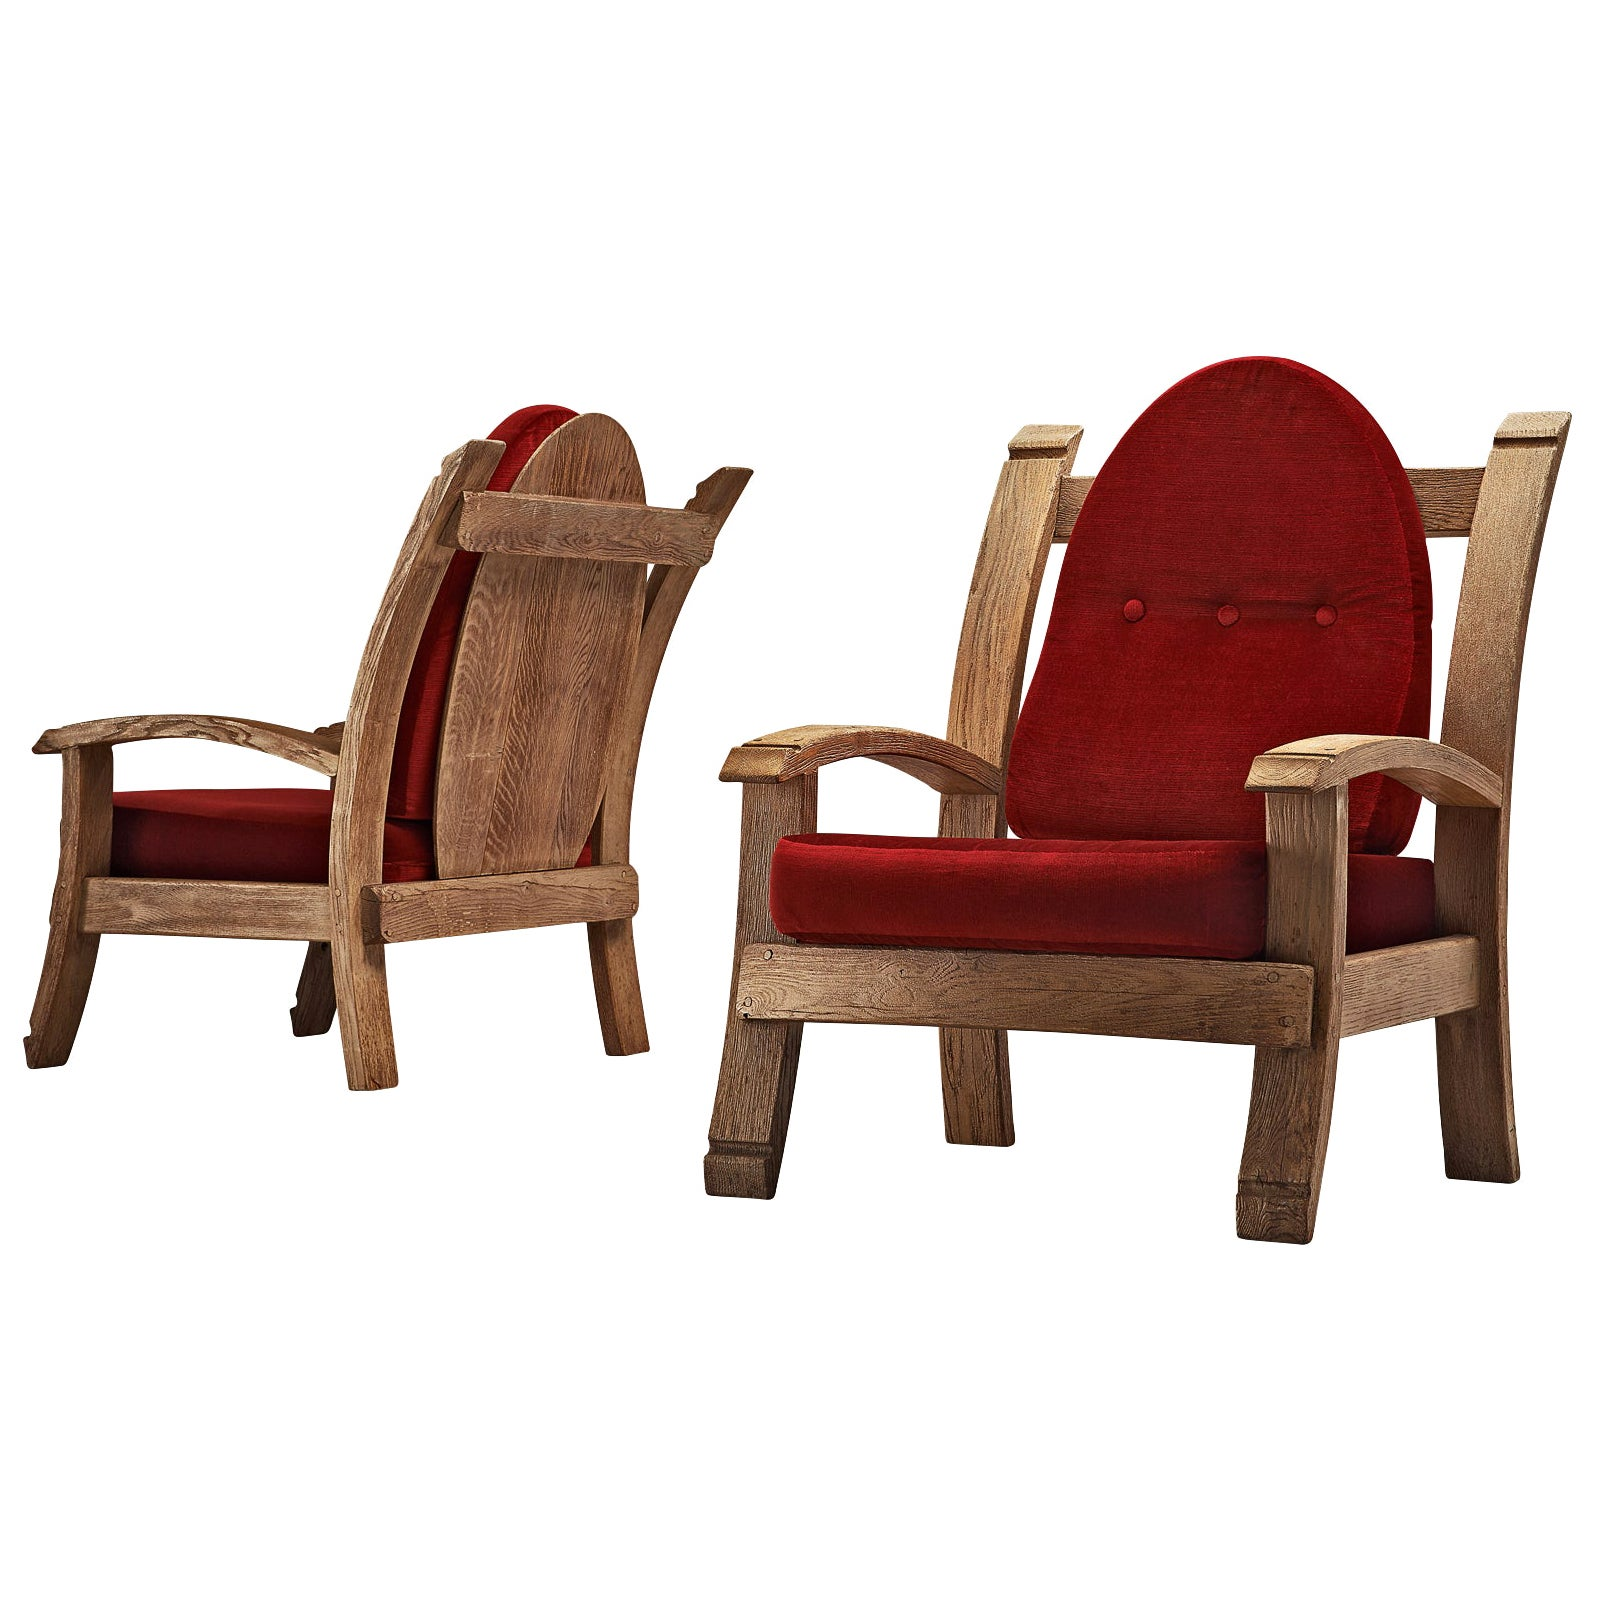 Pair of French Art Deco Armchairs in Solid Oak